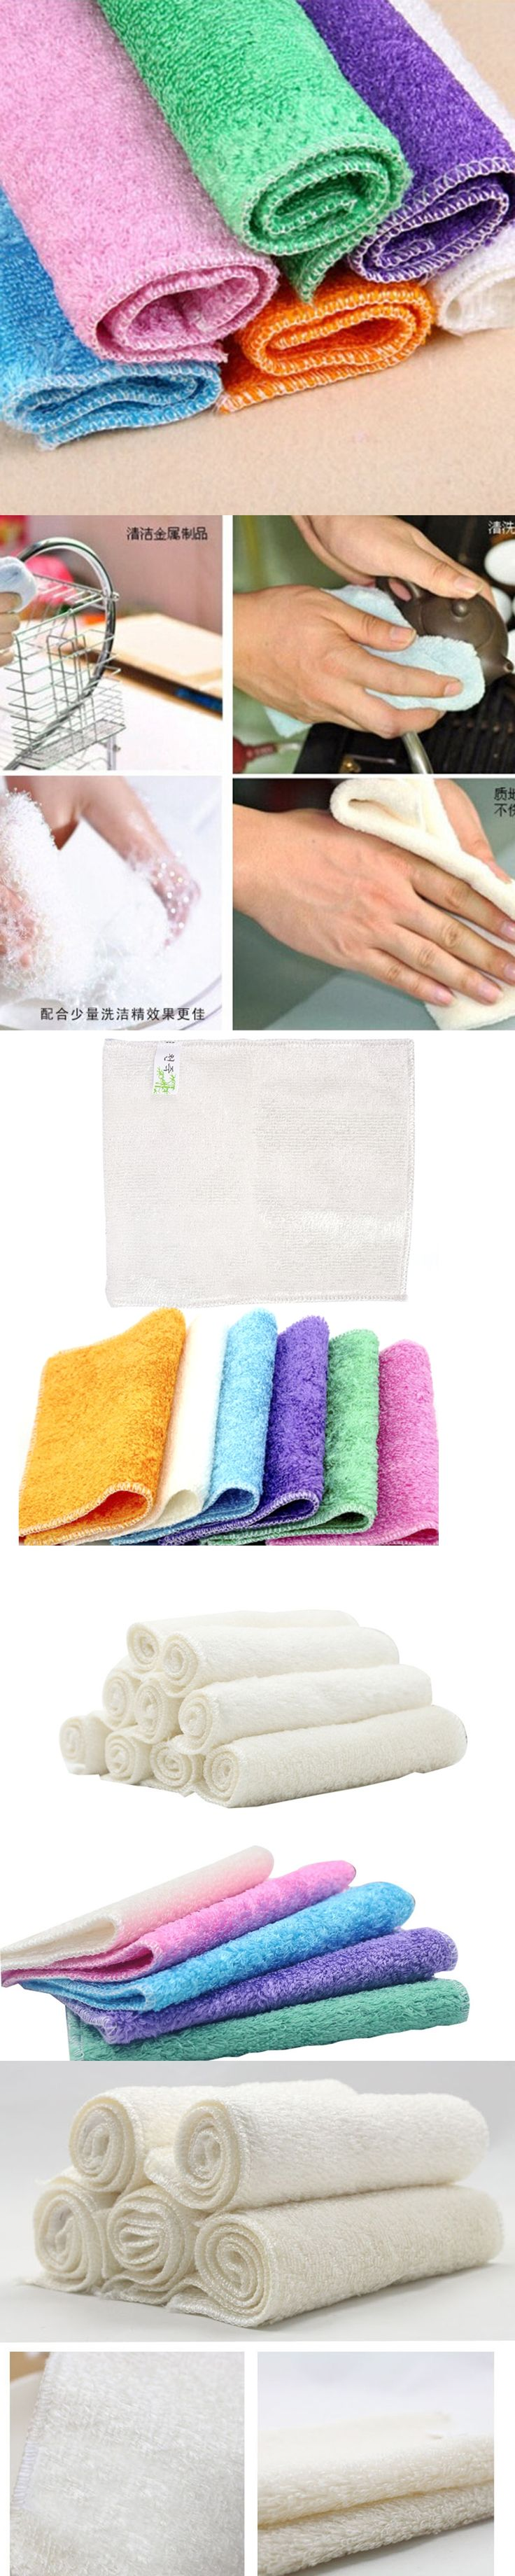 Microfiber Efficient Anti-grease Color Dish Cloth Bamboo Fiber Washing Towel Magic Kitchen Cleaning Wiping Rags Random Color